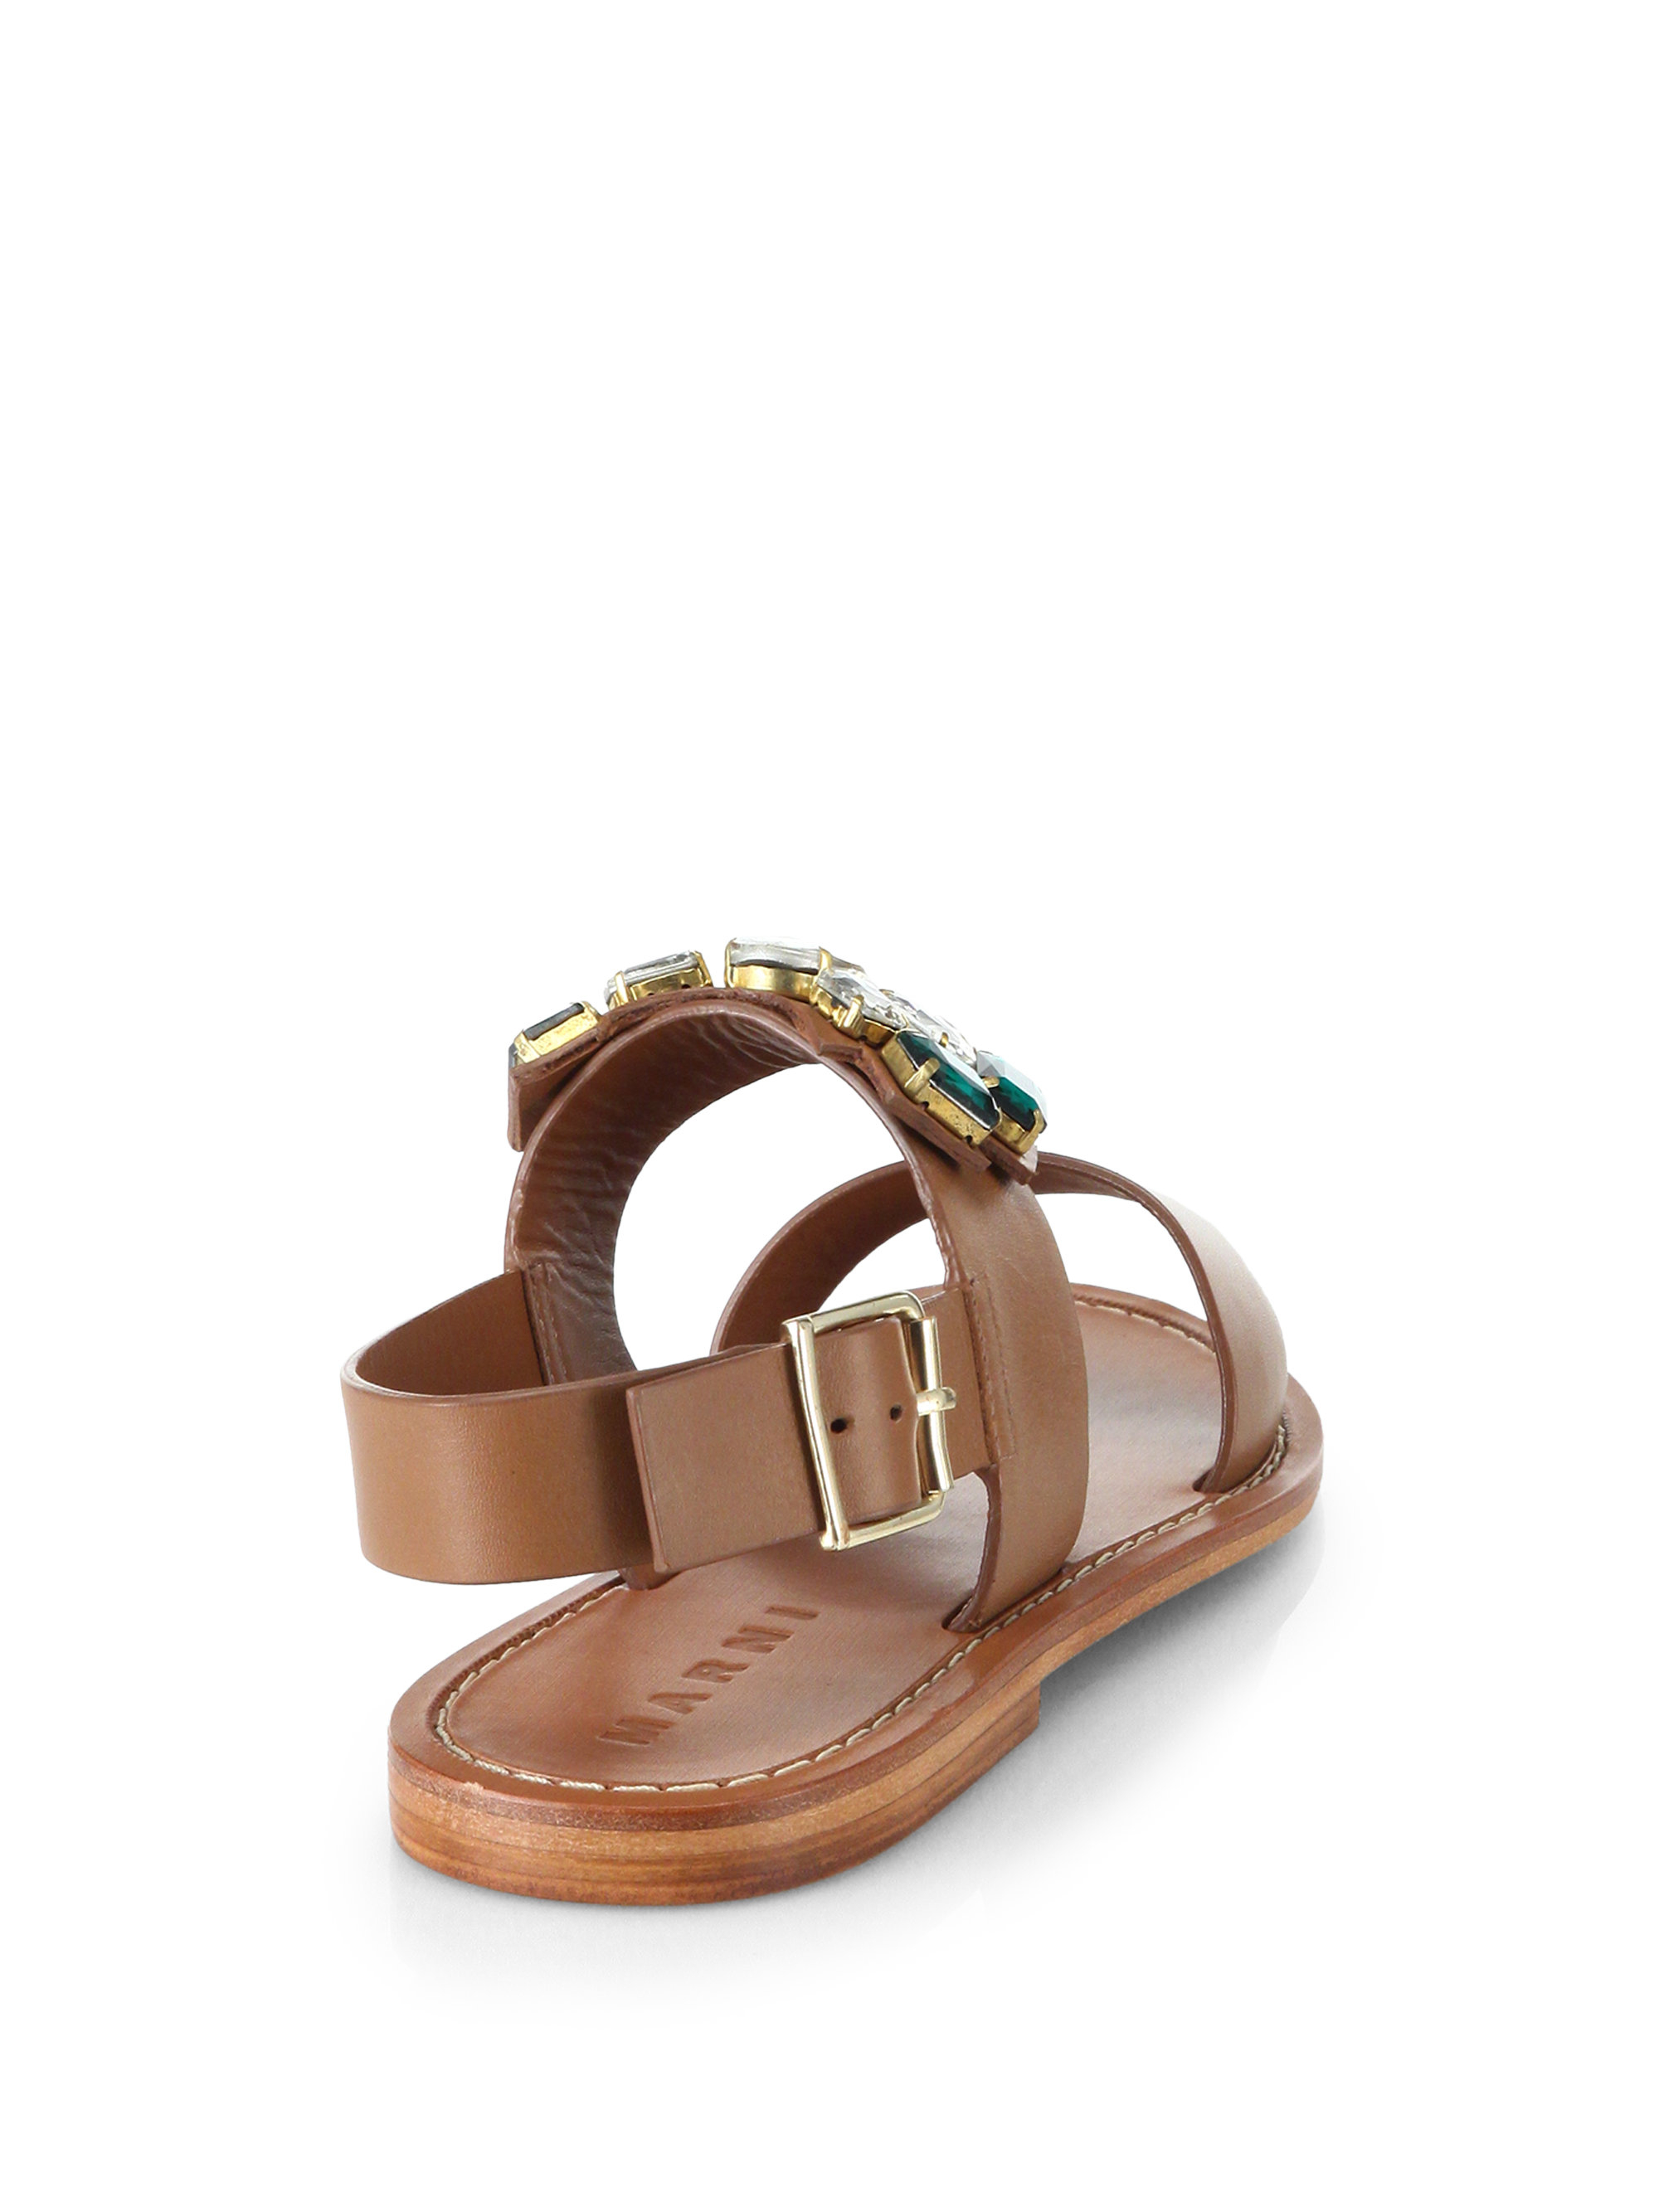 f8b399729 Lyst - Marni Jeweled Leather Sandals in Brown